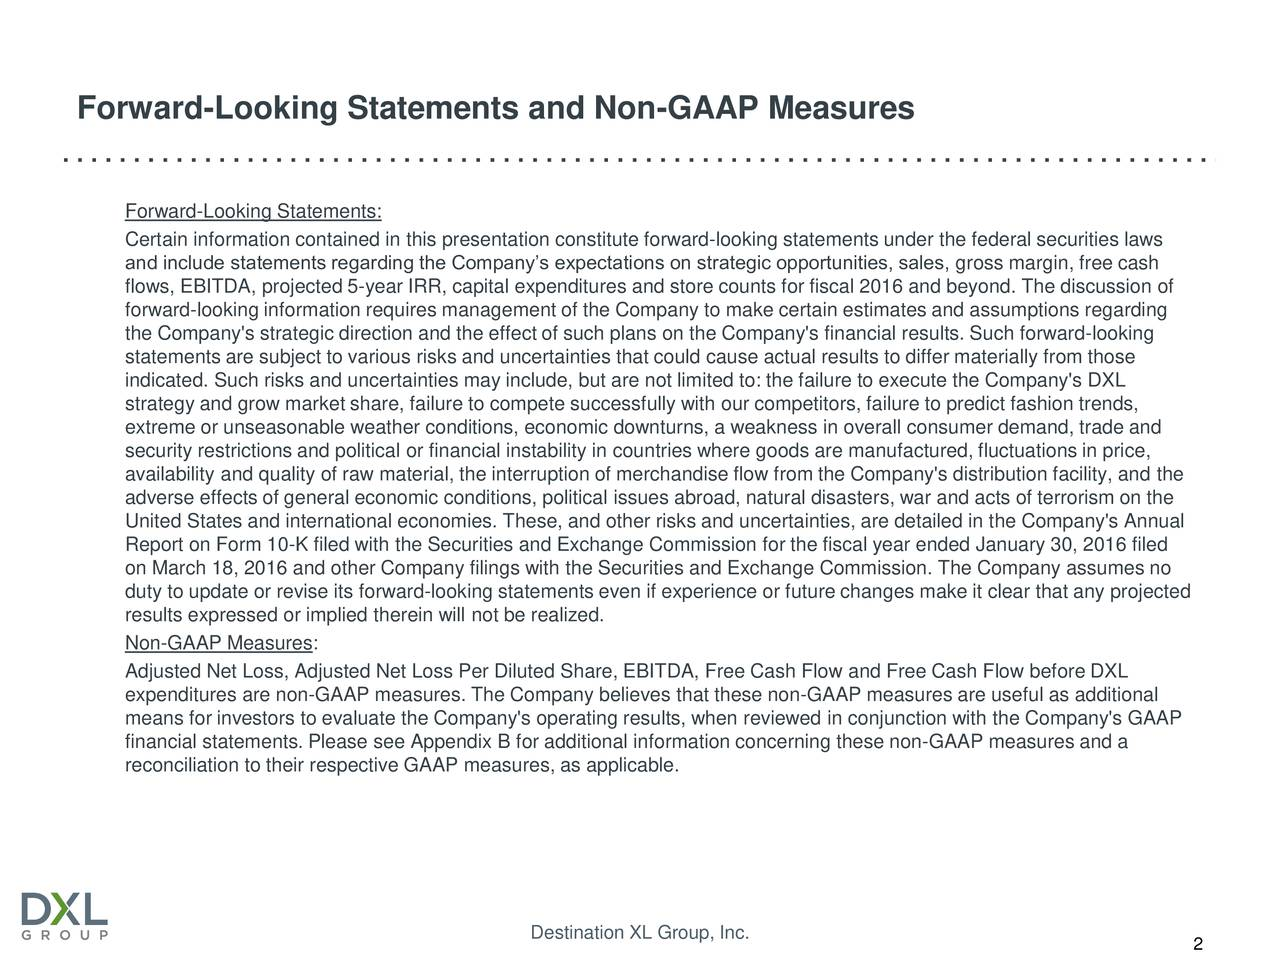 Forward-Looking Statements: Certain information contained in this presentation constitute forward-looking statements under the federal securities laws and include statements regarding the Companys expectations on strategic opportunities, sales, gross margin, free cash flows, EBITDA, projected 5-year IRR, capital expenditures and store counts for fiscal 2016 and beyond. The discussion of forward-looking information requires management of the Company to make certain estimates and assumptions regarding the Company's strategic direction and the effect of such plans on the Company's financial results. Such forward-looking statements are subject to various risks and uncertainties that could cause actual results to differ materially from those indicated. Such risks and uncertainties may include, but are not limited to: the failure to execute the Company's DXL strategy and grow market share, failure to compete successfully with our competitors, failure to predict fashion trends, extreme or unseasonable weather conditions, economic downturns, a weakness in overall consumer demand, trade and security restrictions and political or financial instability in countries where goods are manufactured, fluctuations in price, availability and quality of raw material, the interruption of merchandise flow from the Company's distribution facility, and the adverse effects of general economic conditions, political issues abroad, natural disasters, war and acts of terrorism on the United States and international economies. These, and other risks and uncertainties, are detailed in the Company's Annual Report on Form 10-K filed with the Securities and Exchange Commission for the fiscal year ended January 30, 2016 filed on March 18, 2016 and other Company filings with the Securities and Exchange Commission. The Company assumes no duty to update or revise its forward-looking statements even if experience or future changes make it clear that any projected results expressed or implied therein will